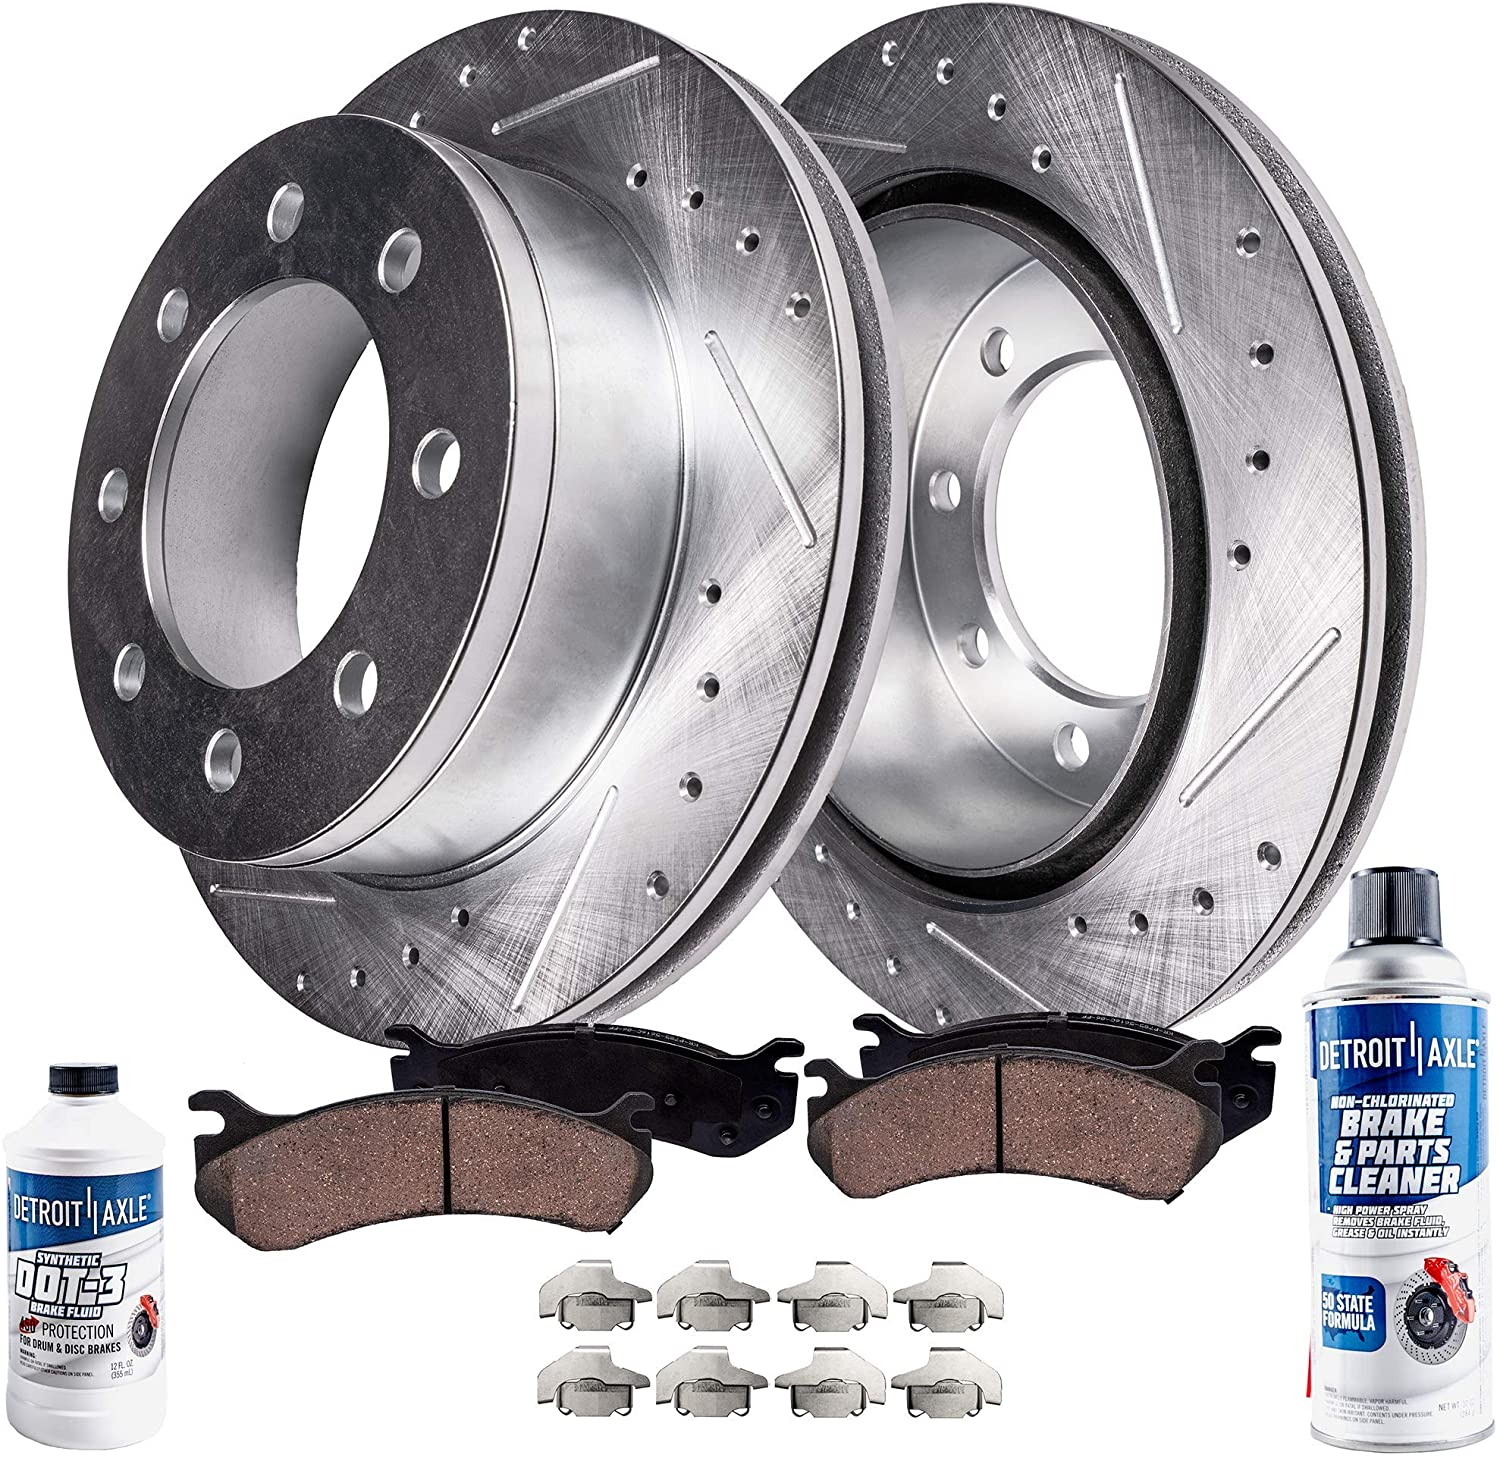 Detroit Axle - Rear Drilled and Slotted Disc Brake Kit Rotors w/Ceramic Pads w/Hardware & Brake Kit Cleaner & Fluid for Chevy GMC Sierra Silverado 1500 HD Suburban Avalanche Yukon XL 2500 Hummer H2